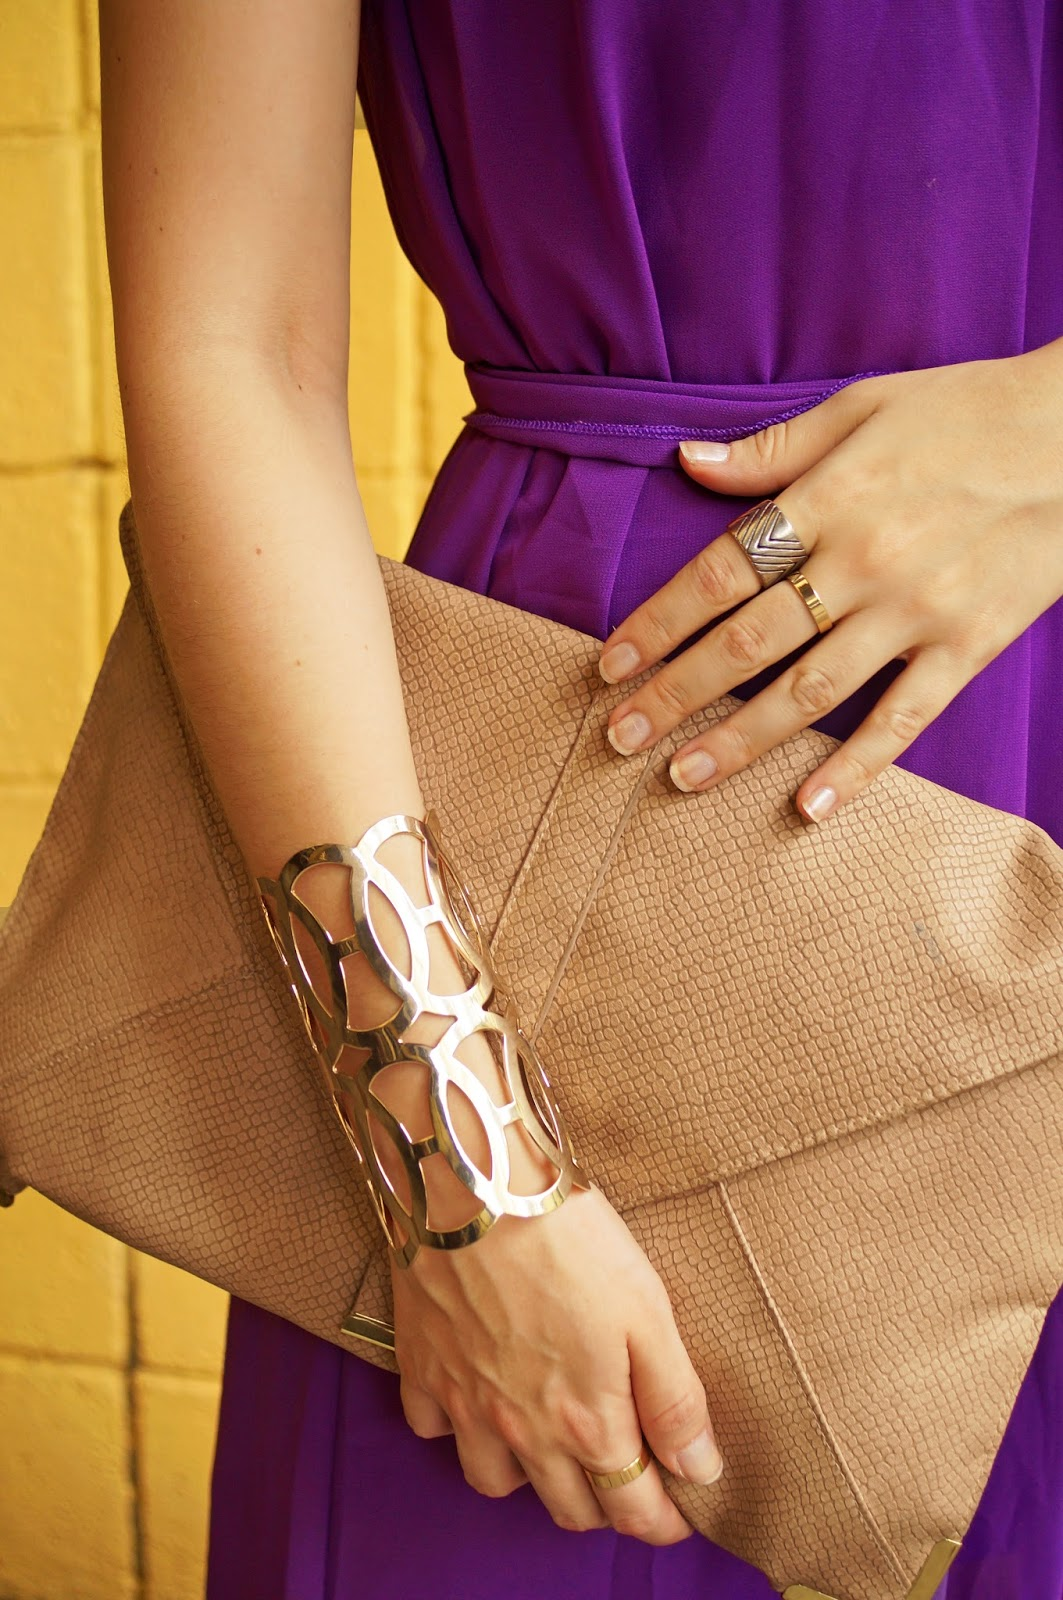 Add bold jewelry to a simple outfit to add pizazz!